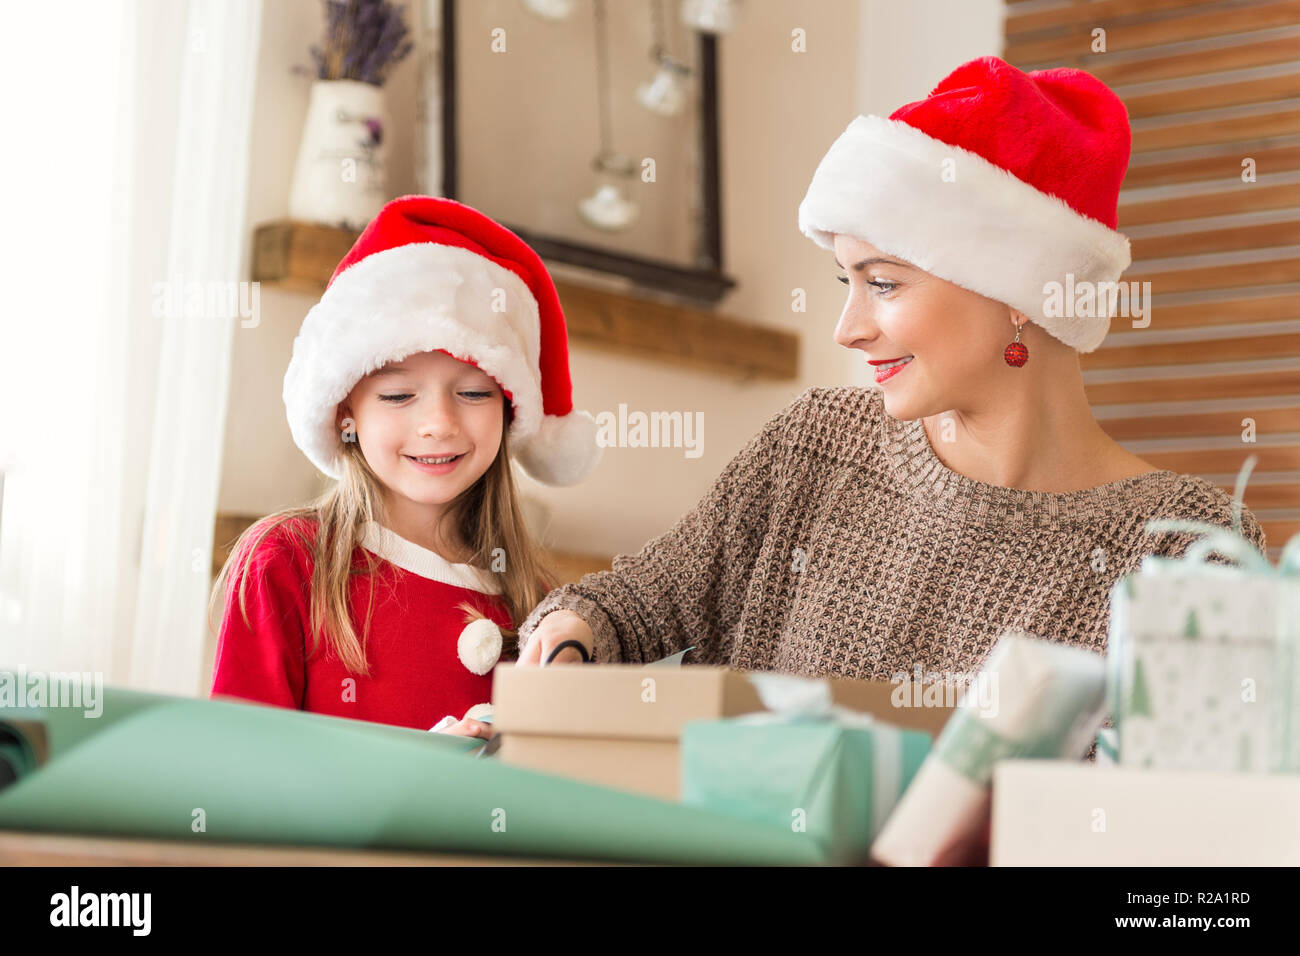 Mother Christmas.Mother And Daughter Wearing Santa Hats Having Fun Wrapping